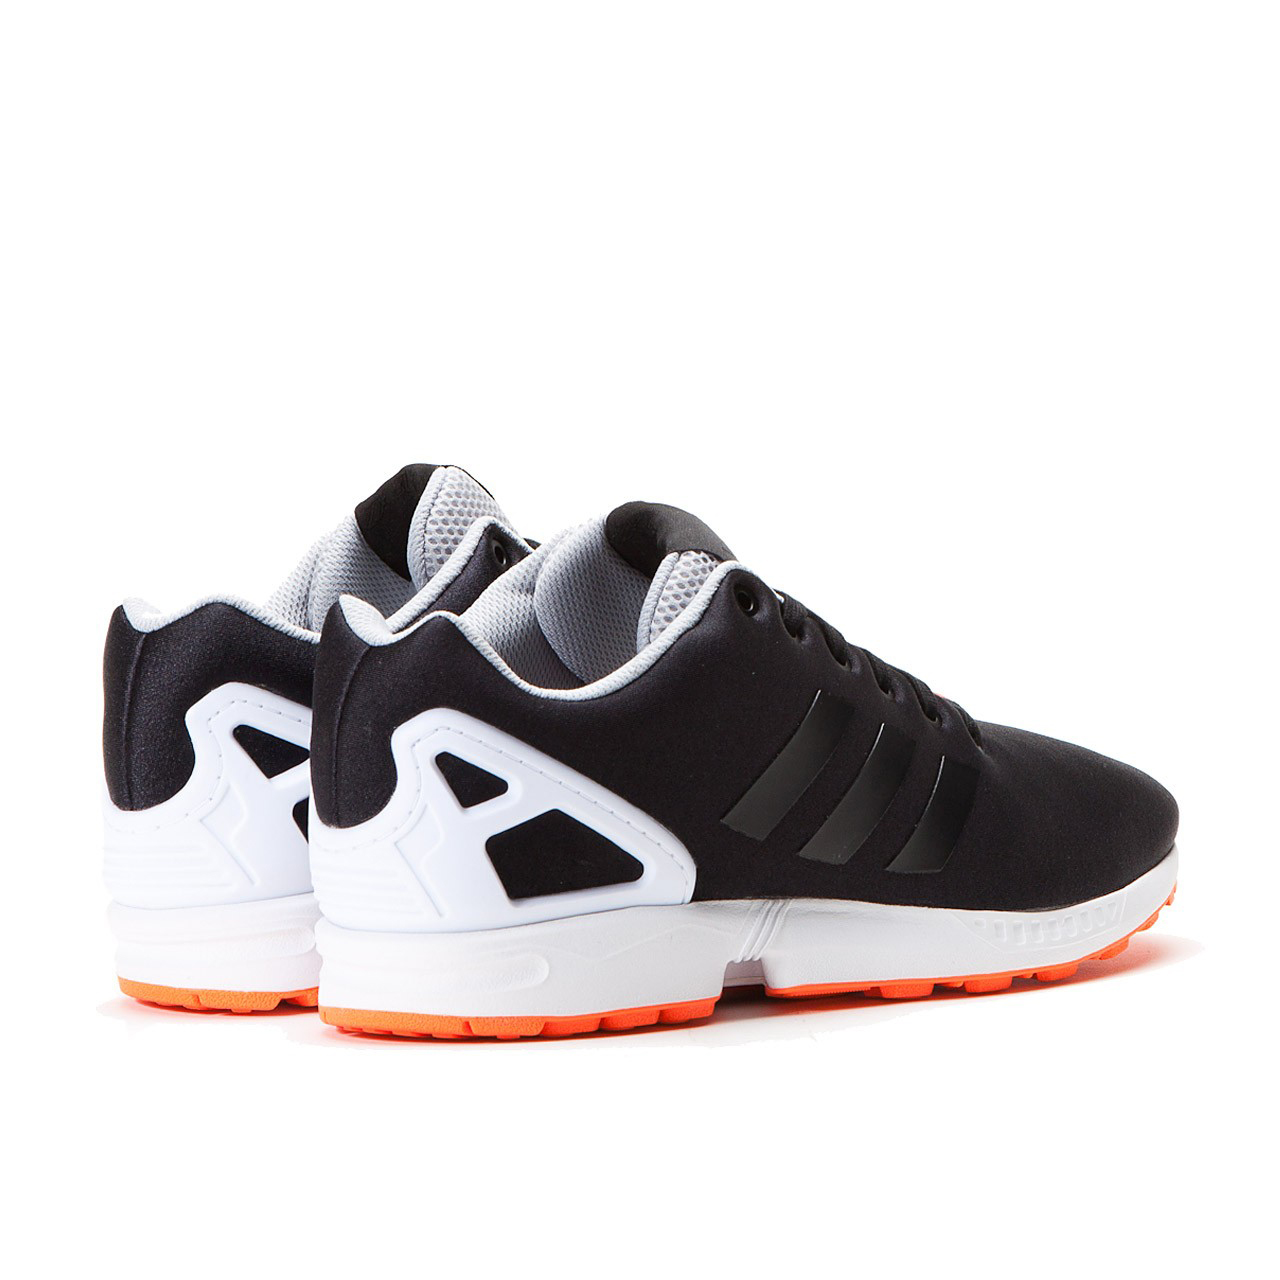 lowest price d4b20 68812 Adidas ZX Flux Cross Training Running Shoe (Core Black  RUnning White).  Product ...